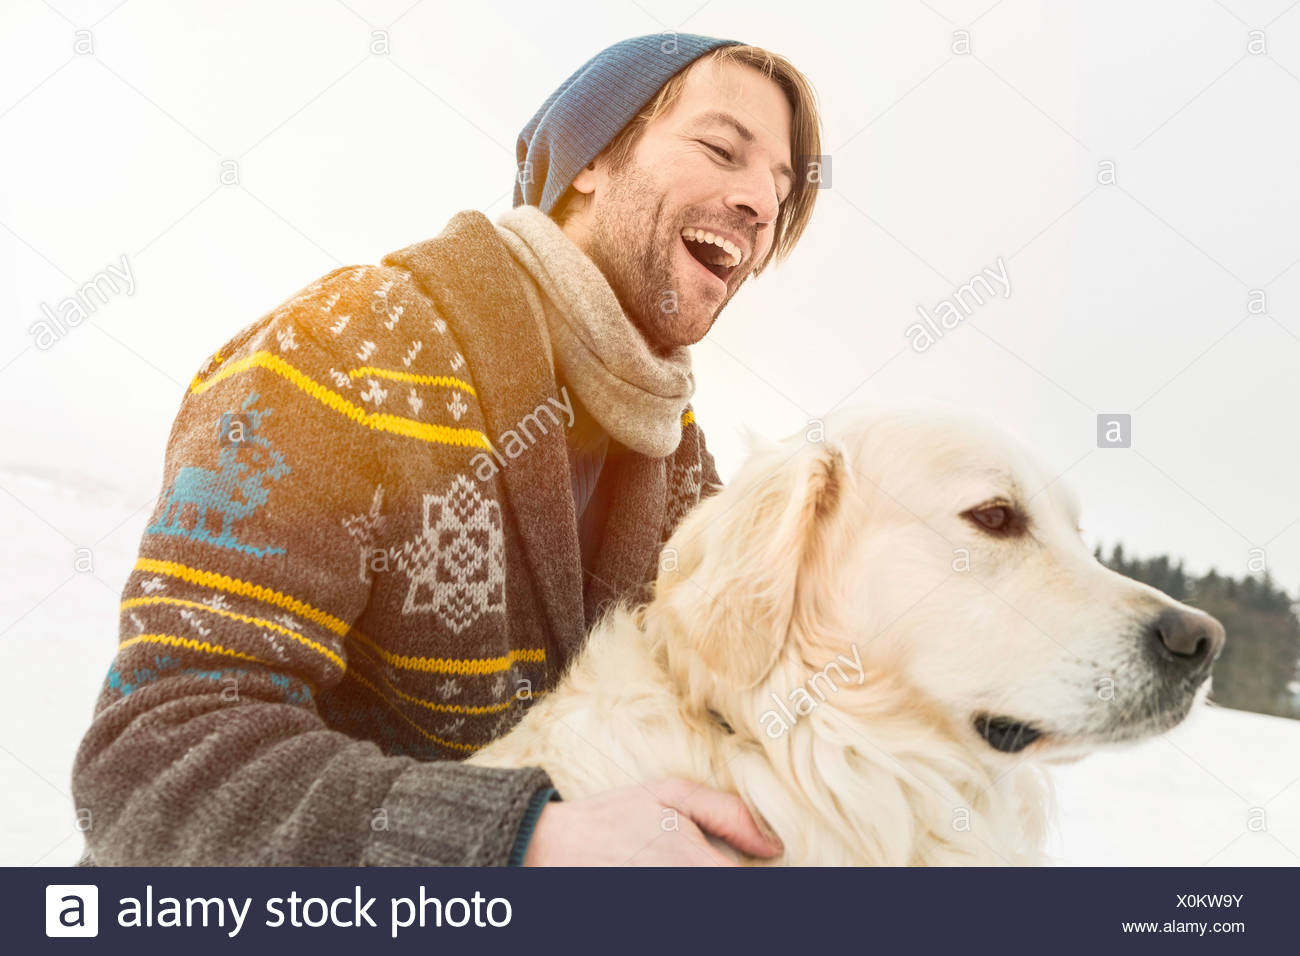 Man wearing knitted cardigan with dog in snow - Stock Image